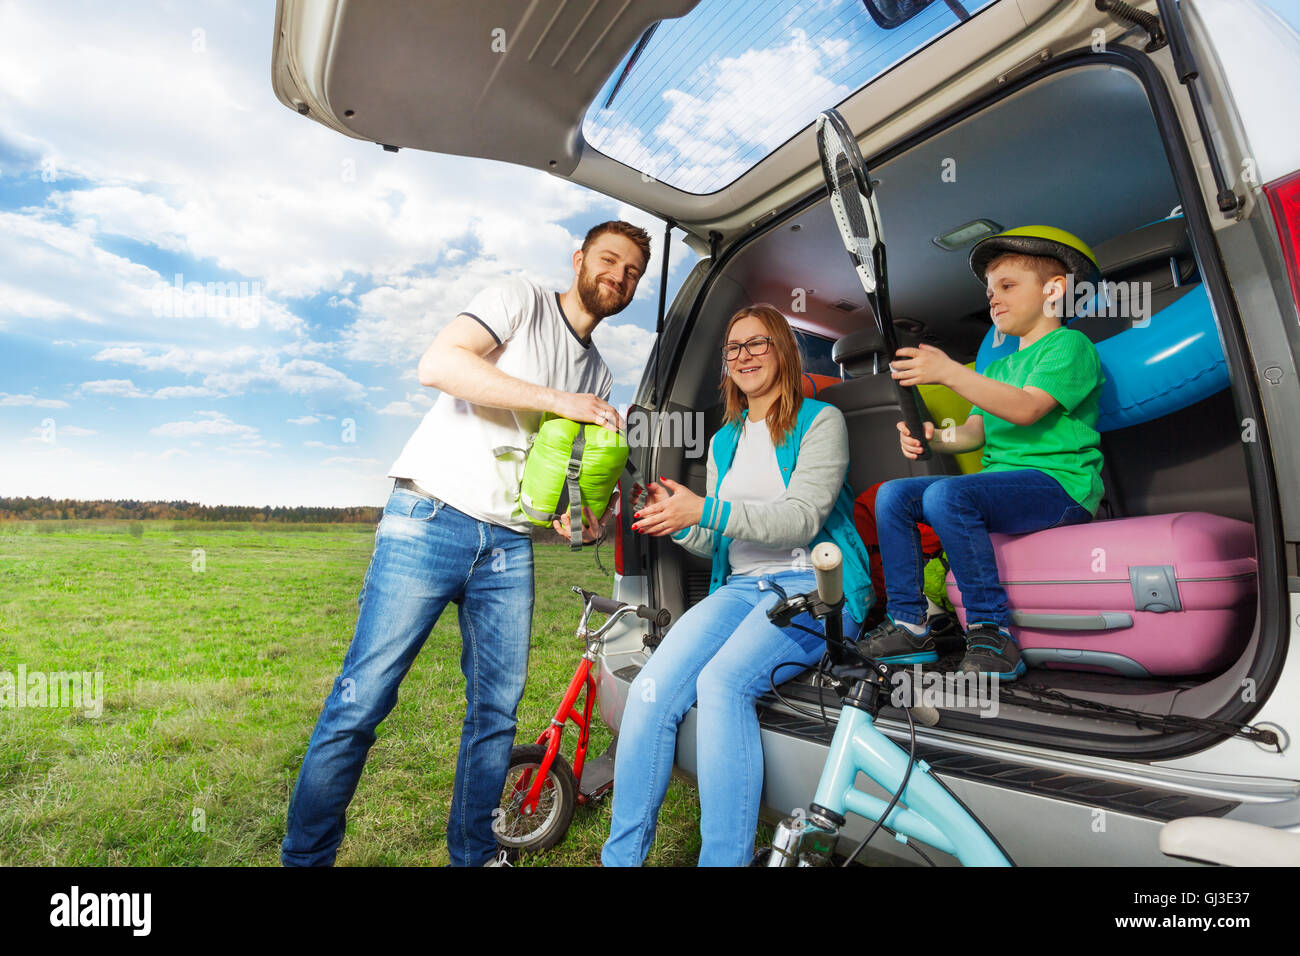 Young family loading luggage boot for the car trip - Stock Image